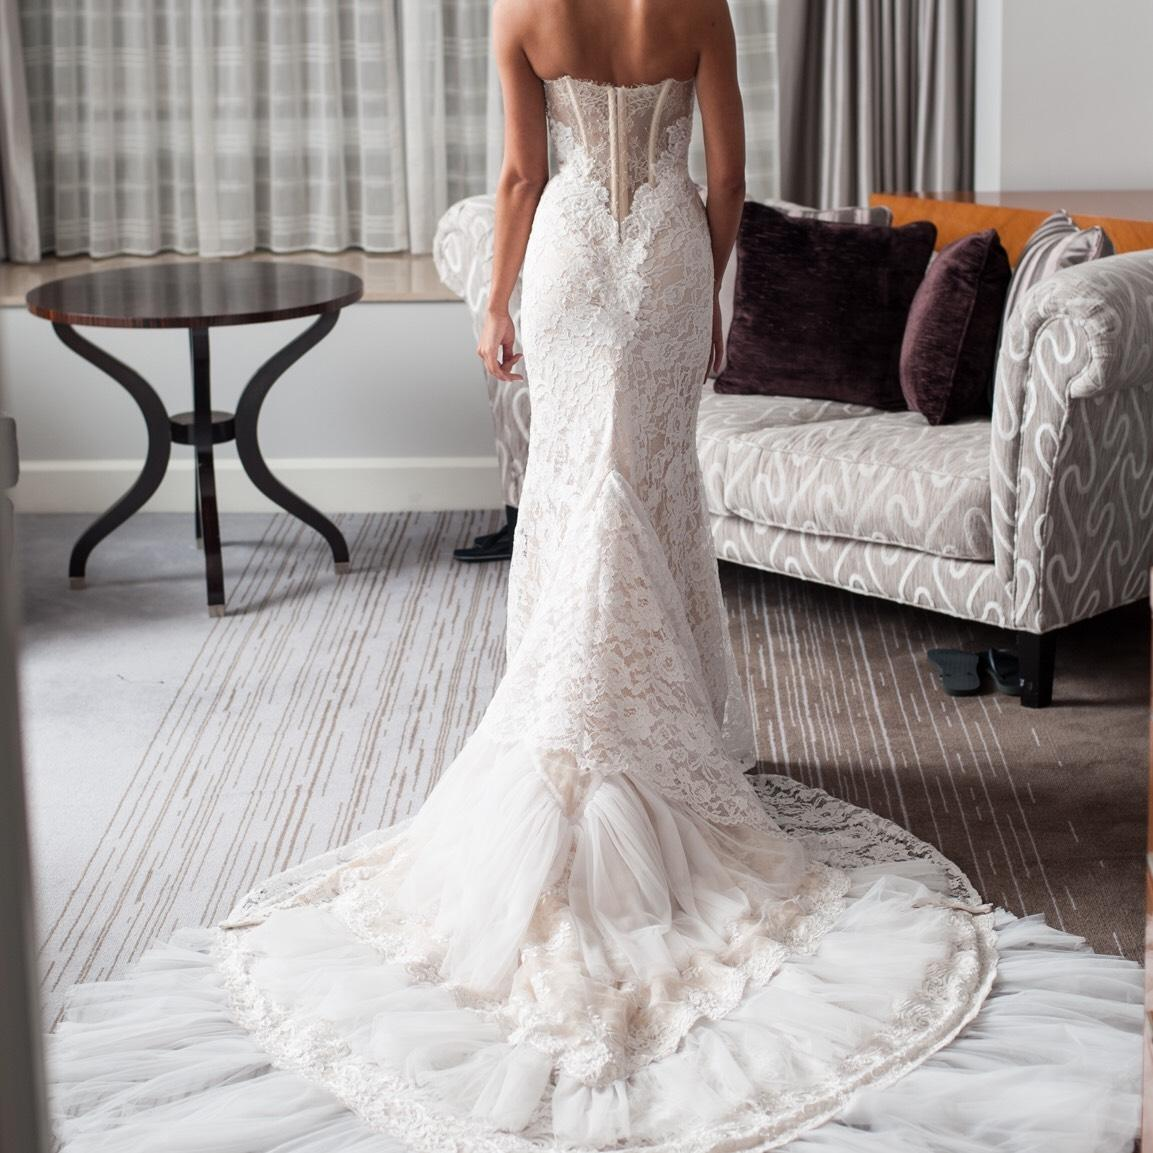 Inbal Dror Wedding Gowns For Sale: Inbal Dror Ivory Lace Sexy Dress Size 4 (S)